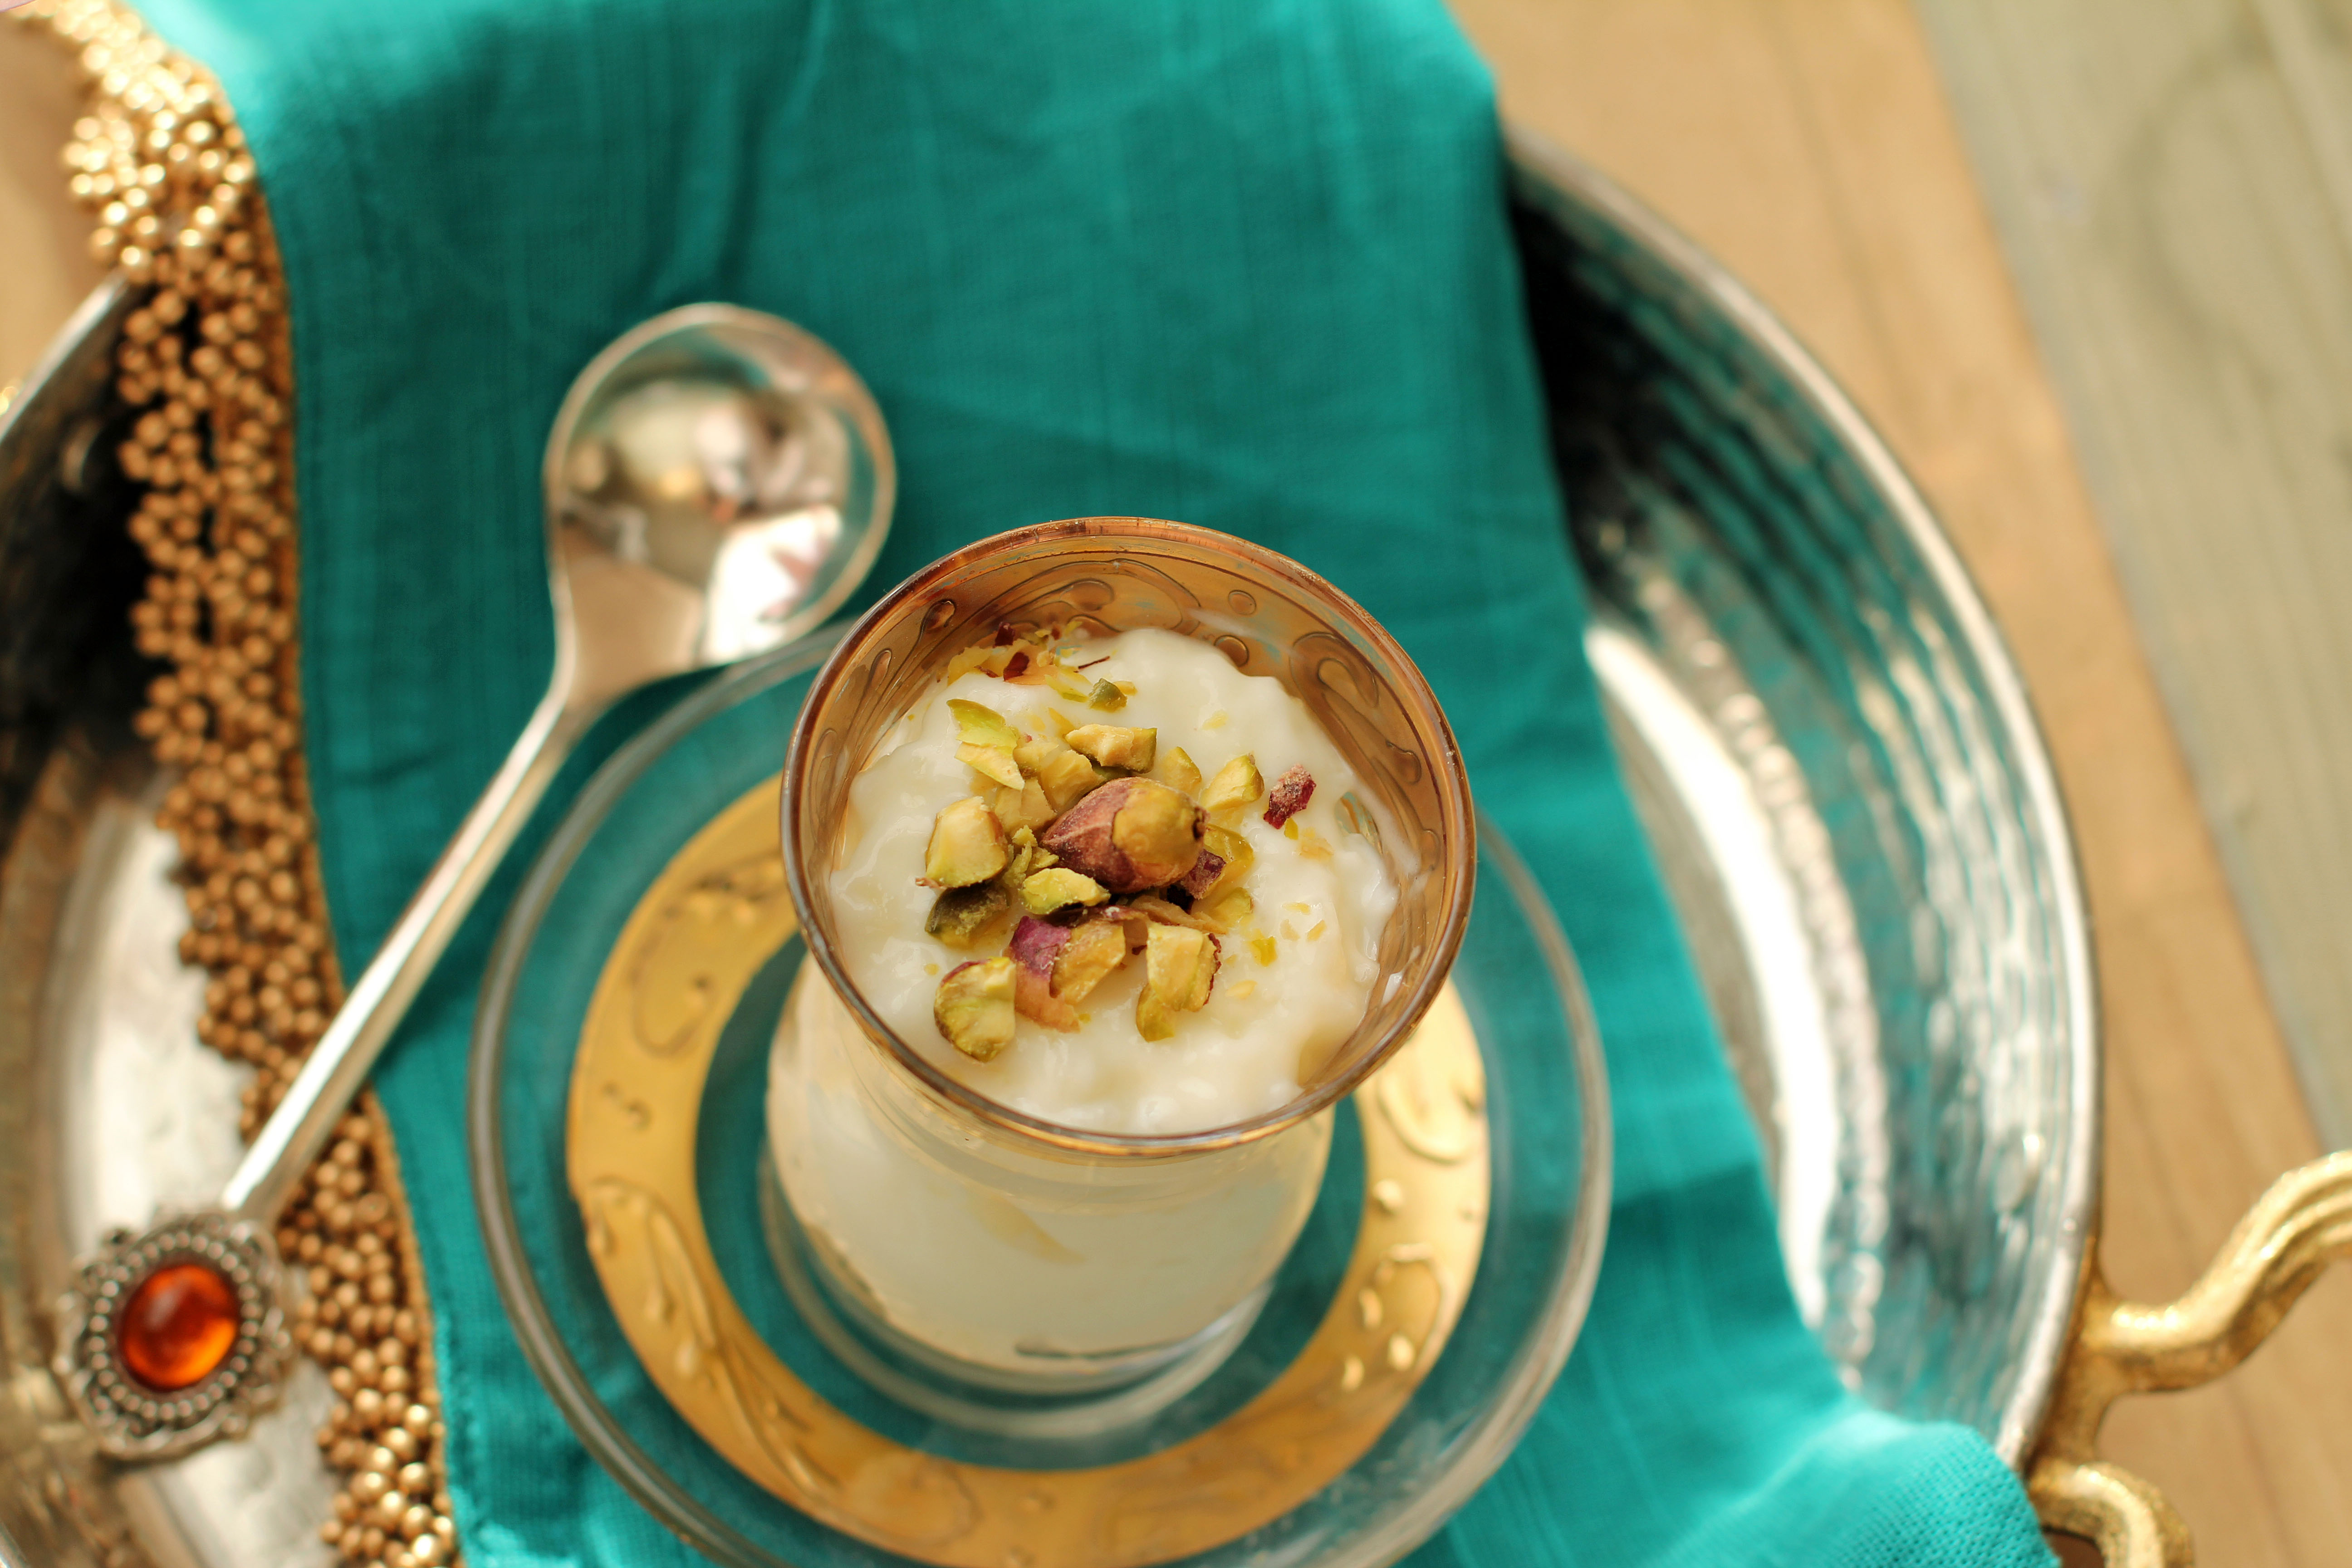 Creamy Rice Pudding infused with Orange Blossom Water &amp; Cardamom